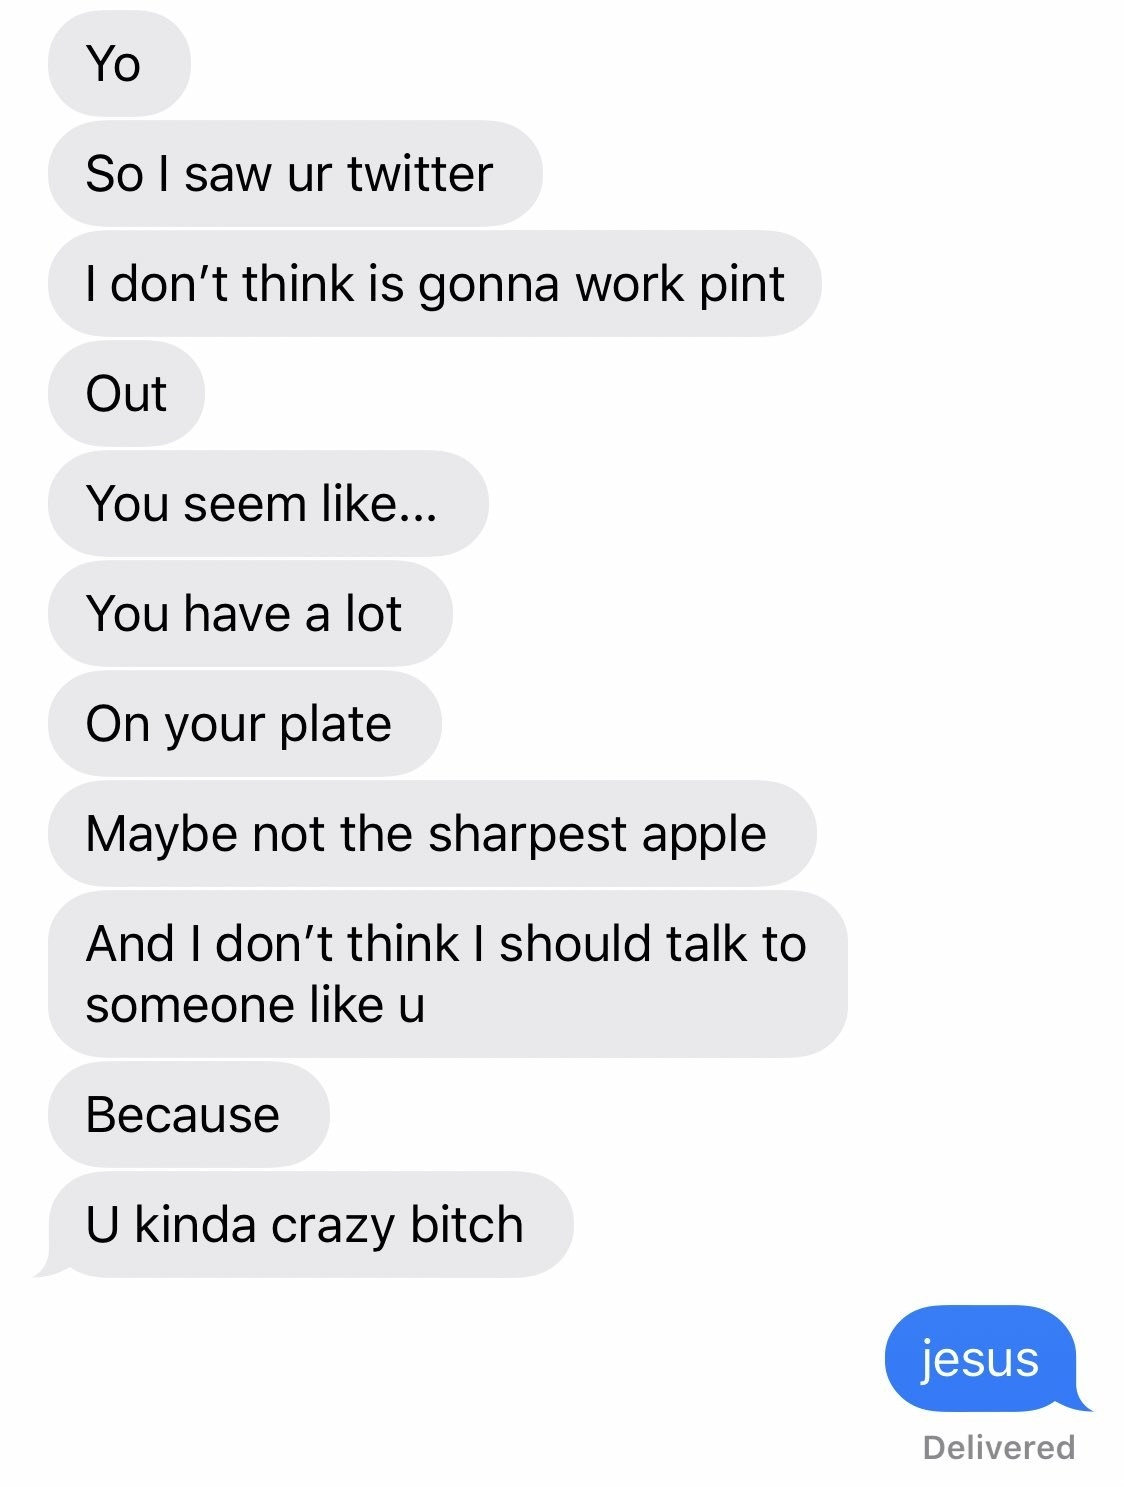 "Text: ""Yo, so i saw your twitter. I don't think is gonna work out. you seem like...you have a lot on your plate. maybe not the sharpest apple and i don't think i should talk to someone like u because u kinda crazy bitch"" ""Jesus"""